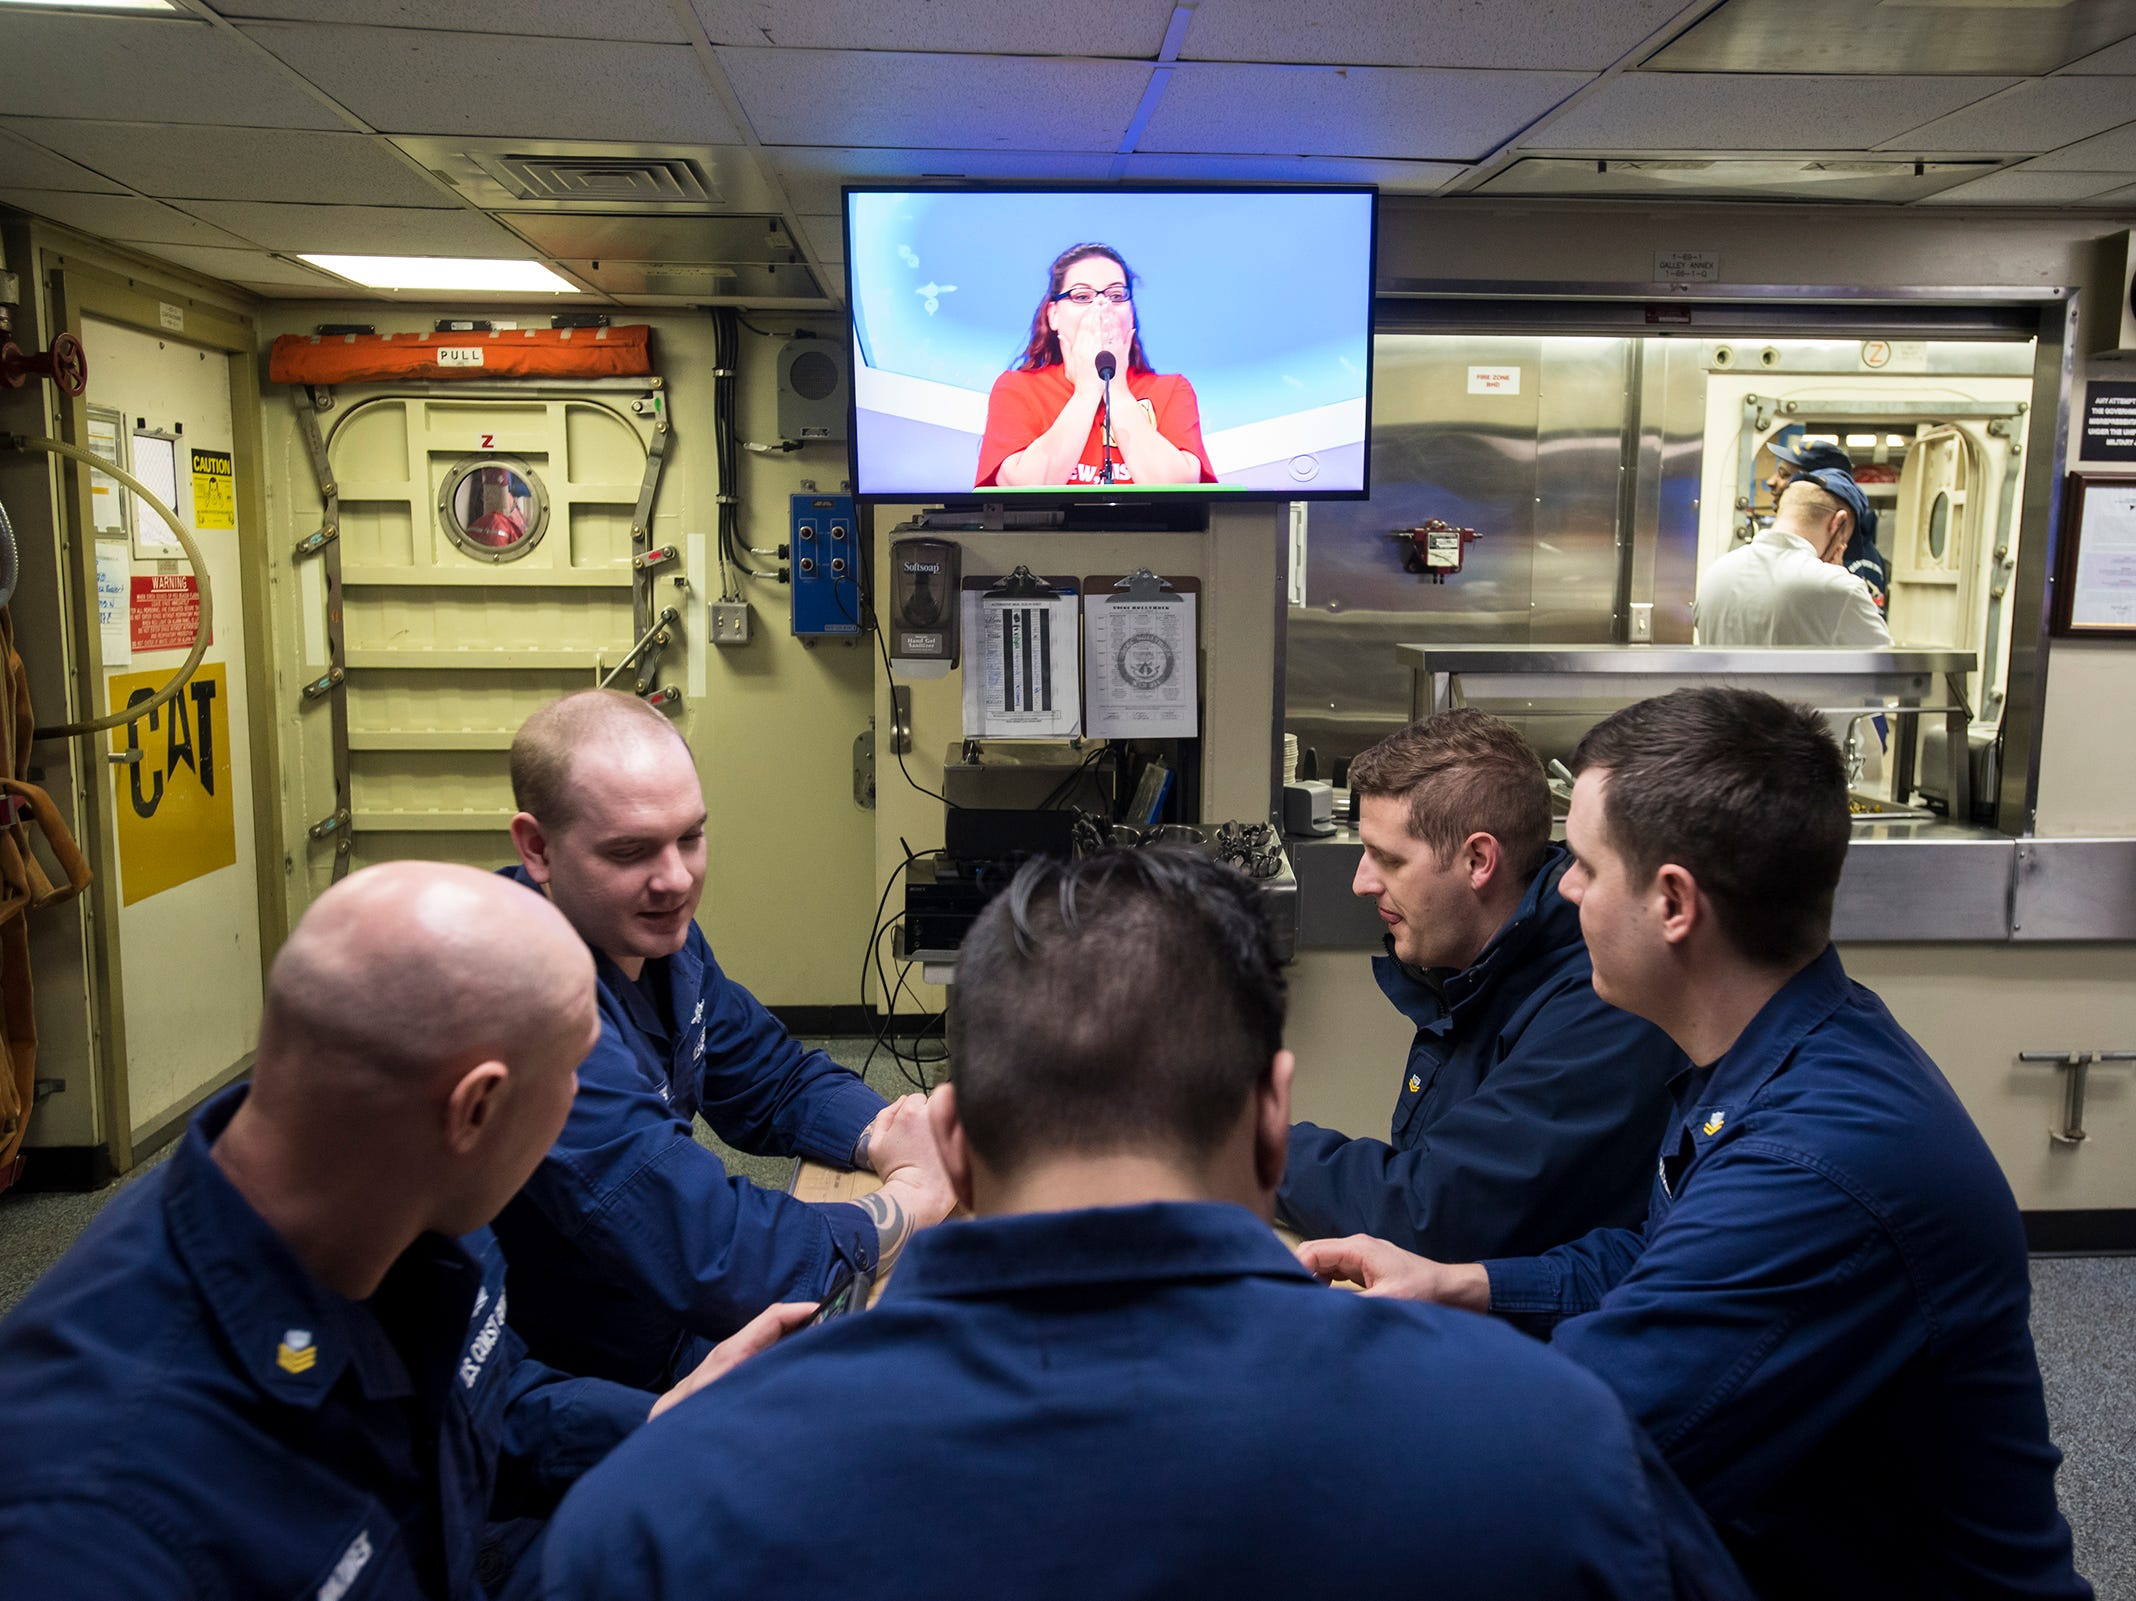 """Below deck, members of the Hollyhock's crew use their lunchtime to play a game of cards and watch """"The Price Is Right,"""" which is popular among crews throughout the U.S. Coast Guard. """"It's a good way for the crew to come together,"""" CS2 Lee Johnson, who works in the kitchen, said. """"...it's good morale."""""""